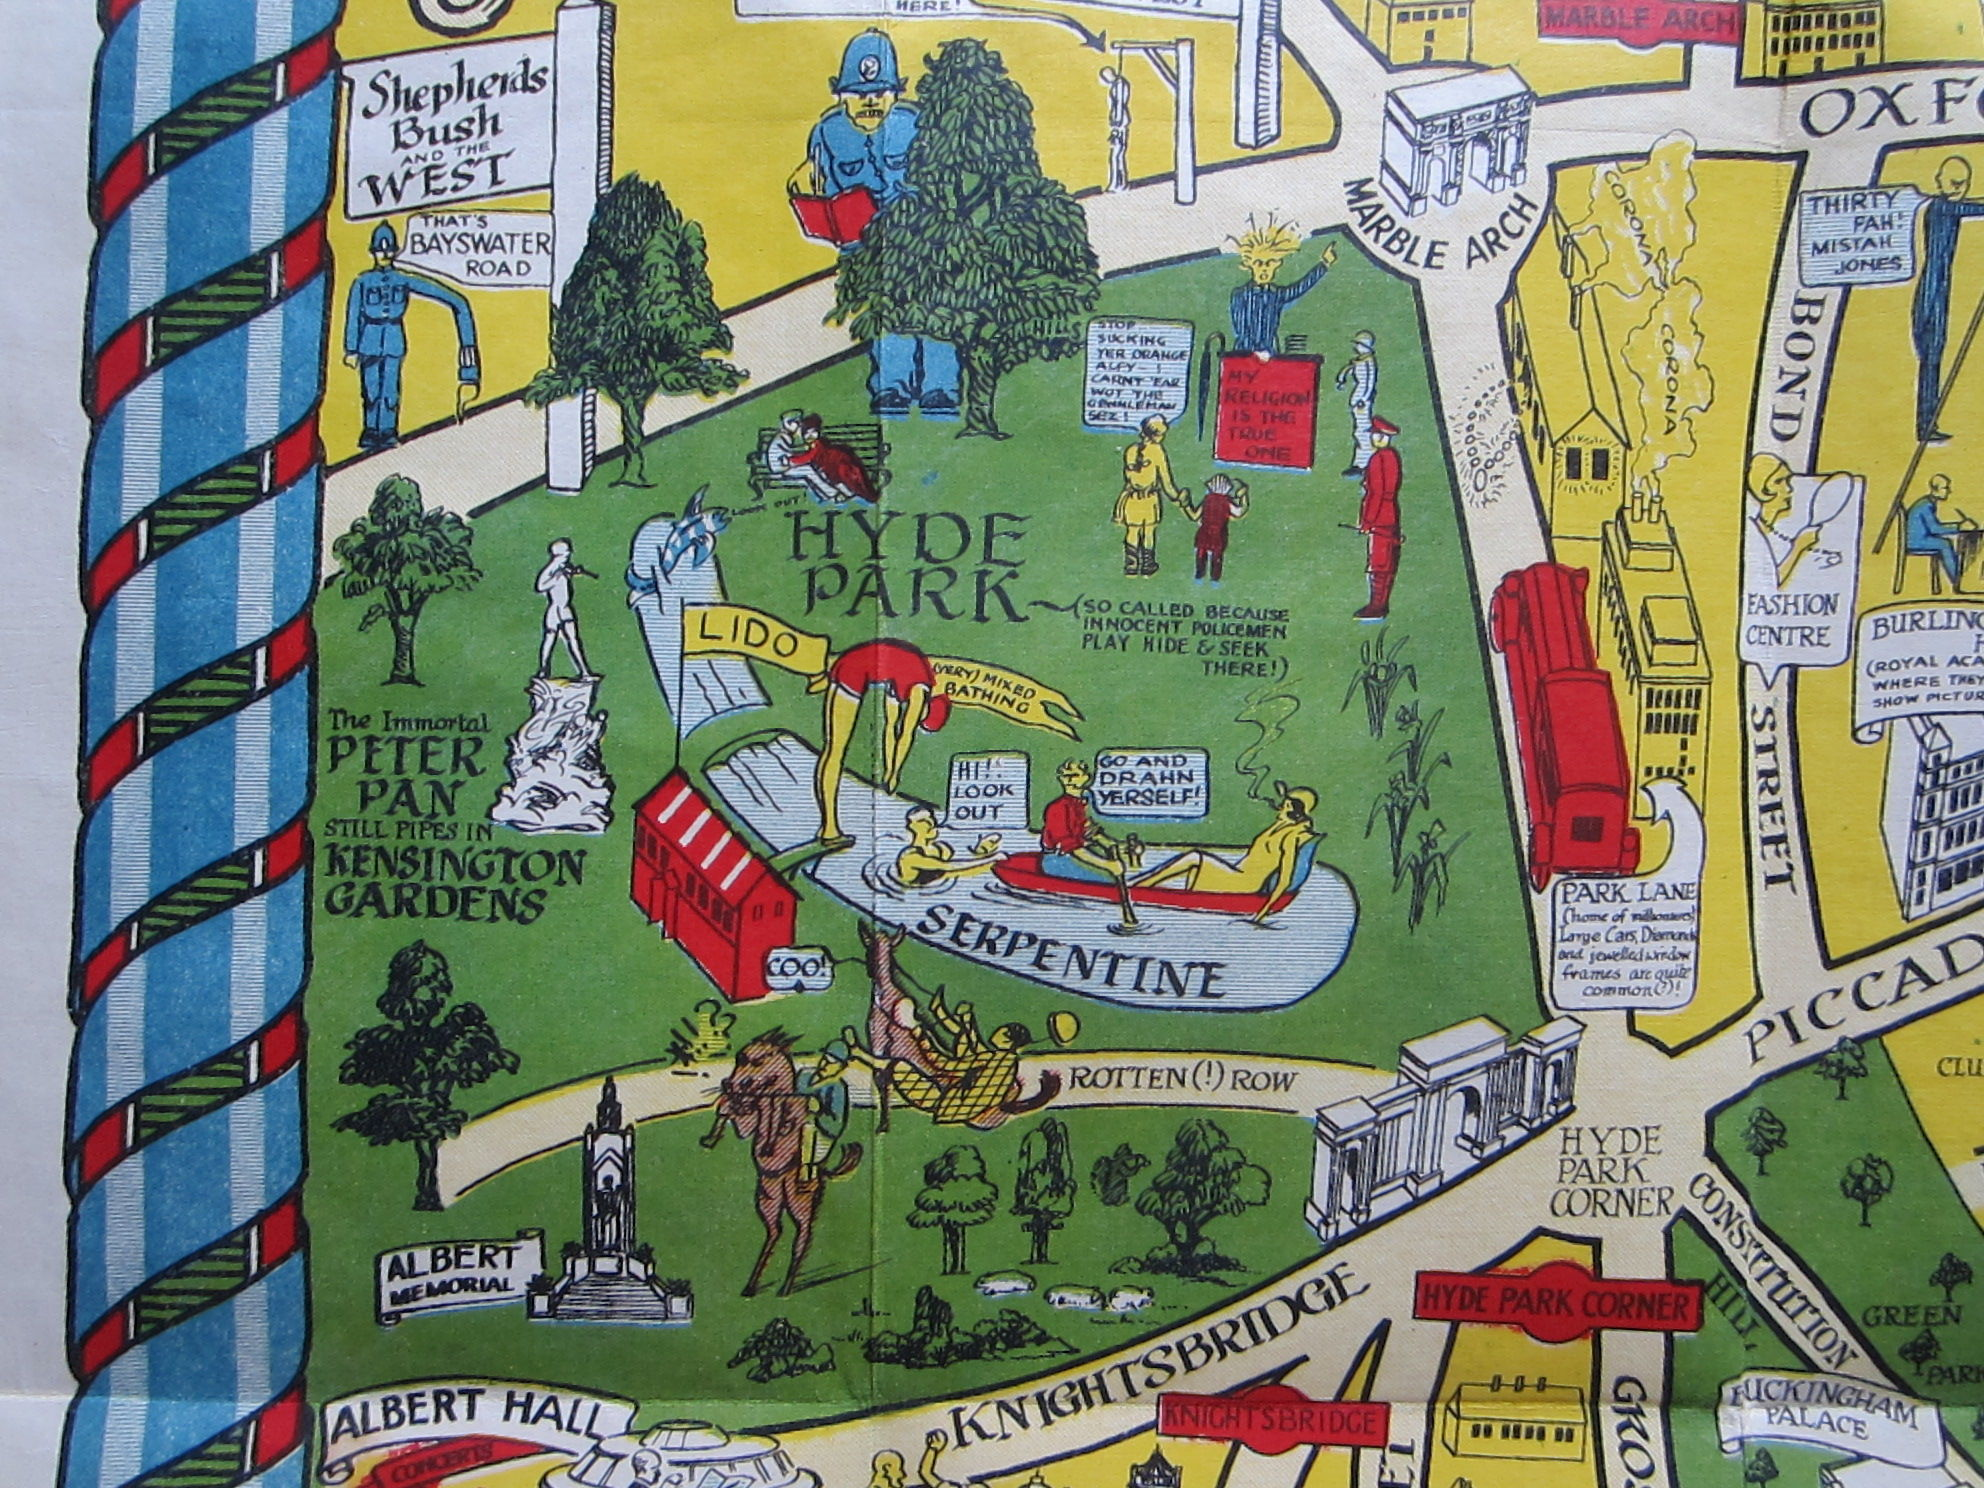 The New Pictorial Map of London (photo 3)